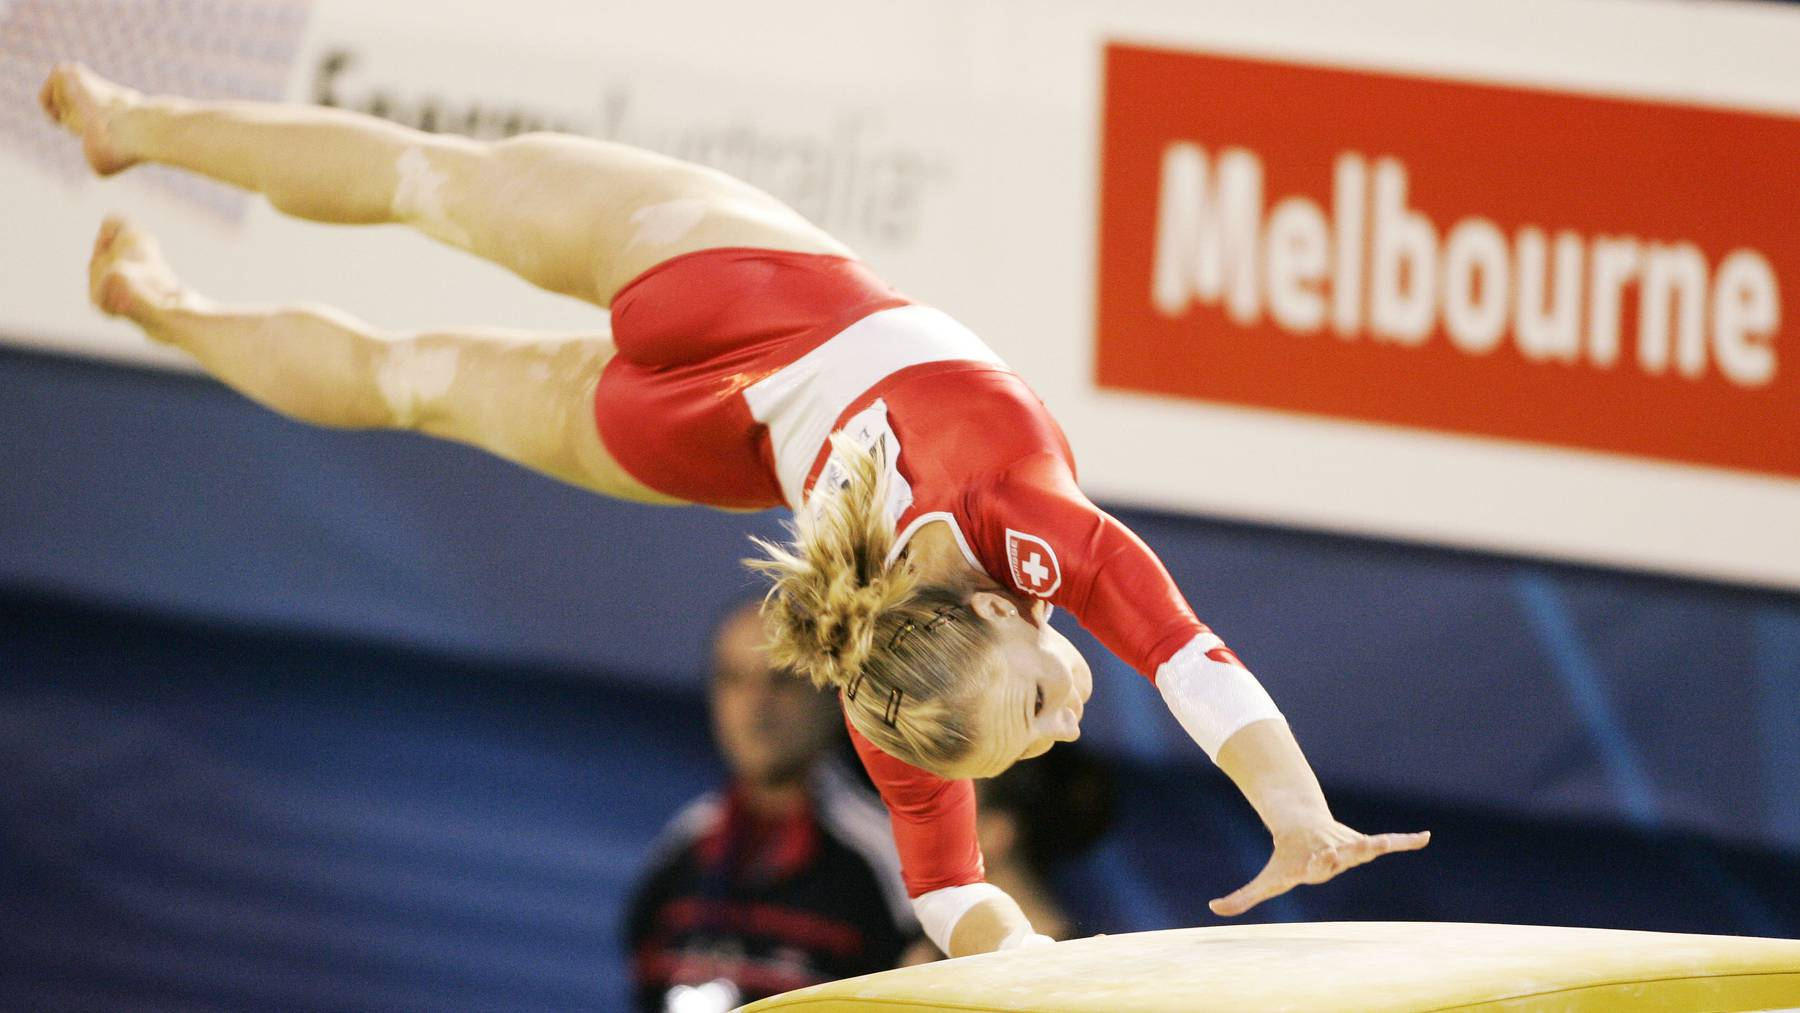 Ariella Kaeslin of Switzerland makes a vault during women's qualifying at the World Gymnastics Championships in Melbourne, Australia, Wednesday, Nov. 23, 2005. There are 275 gymnasts competing in this year's world championships.